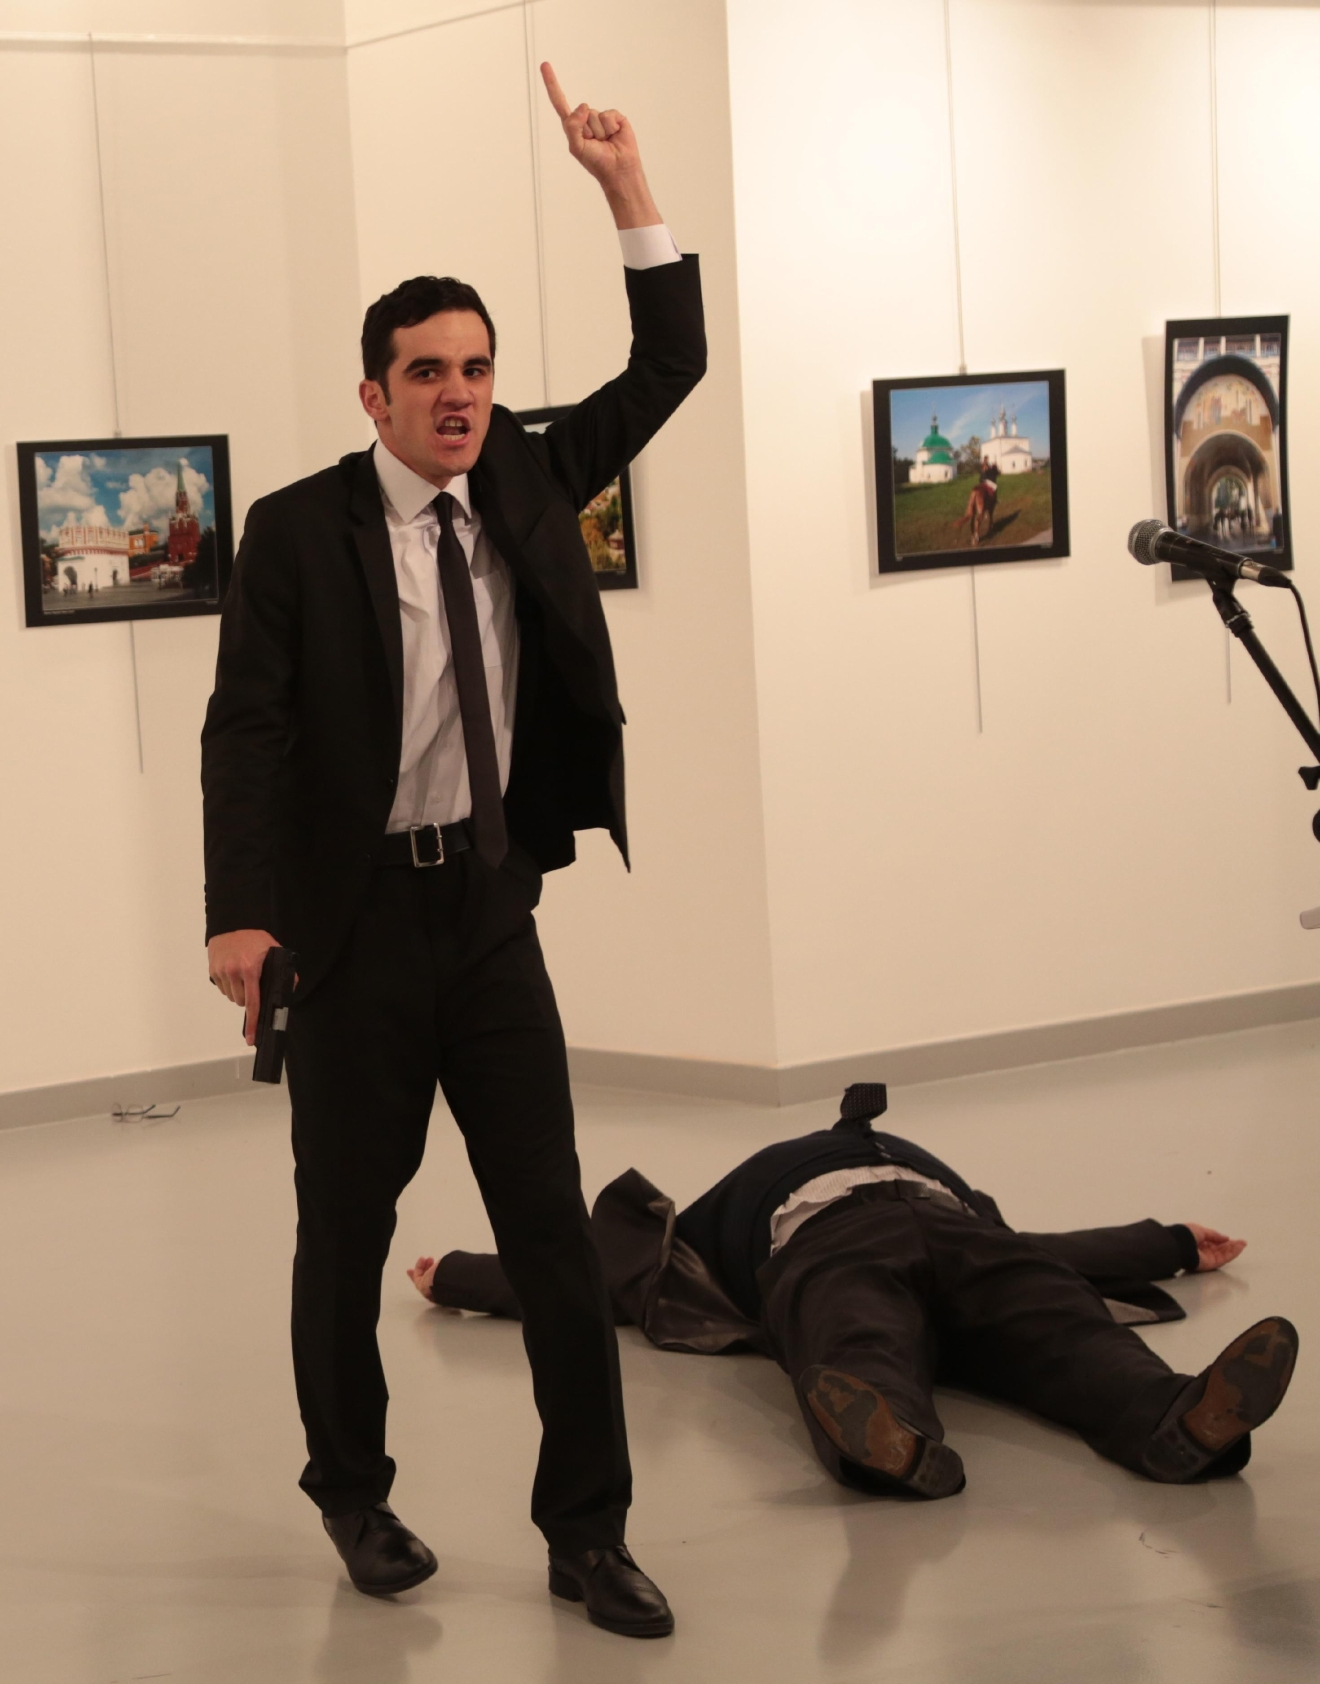 A gunman gestures near to Andrei Karlov, the Russian Ambassador to Turkey, on the ground, at a photo gallery in Ankara, Turkey, Monday, Dec. 19, 2016. An Associated Press photographer says a gunman has fired shots at the Russian ambassador to Turkey. The ambassador's condition wasn't immediately known. (AP Photo/Burhan Ozbilici)